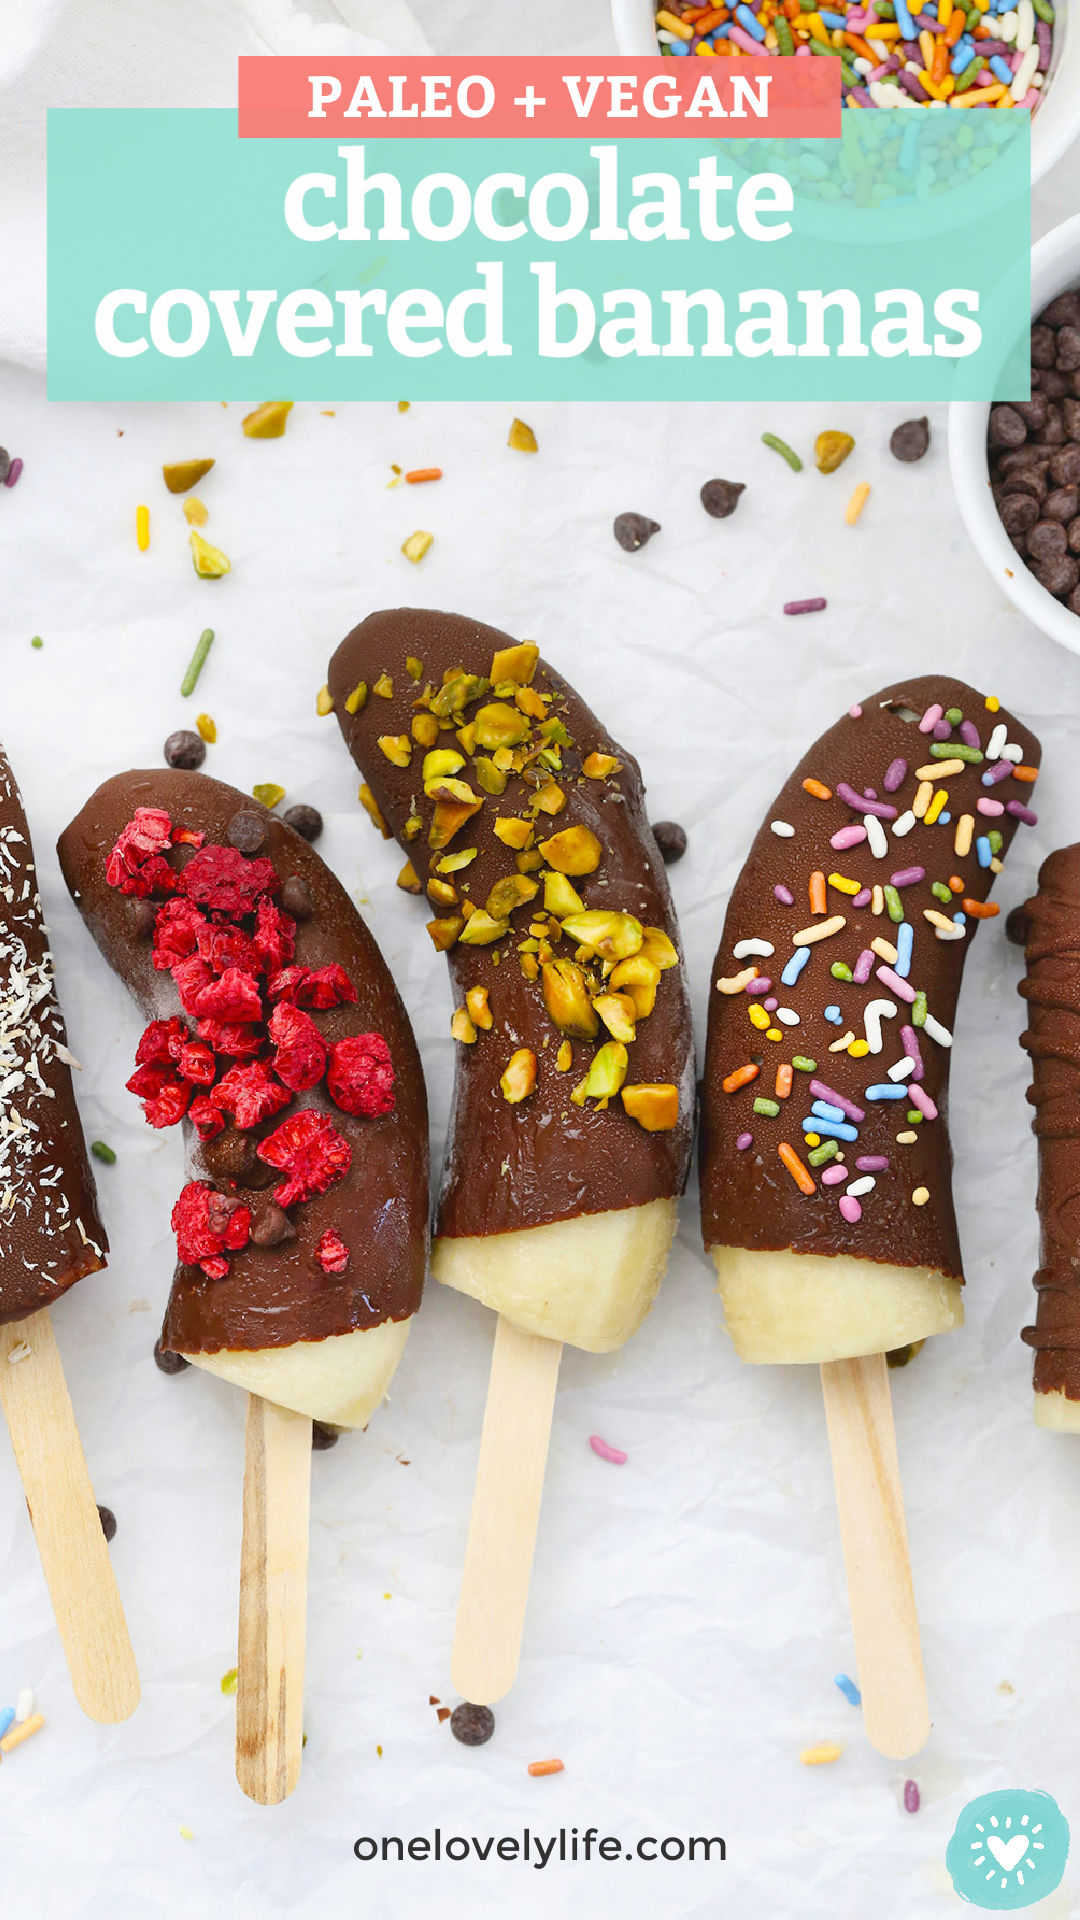 Frozen Chocolate Covered Bananas with different toppings on a piece of parchment paper